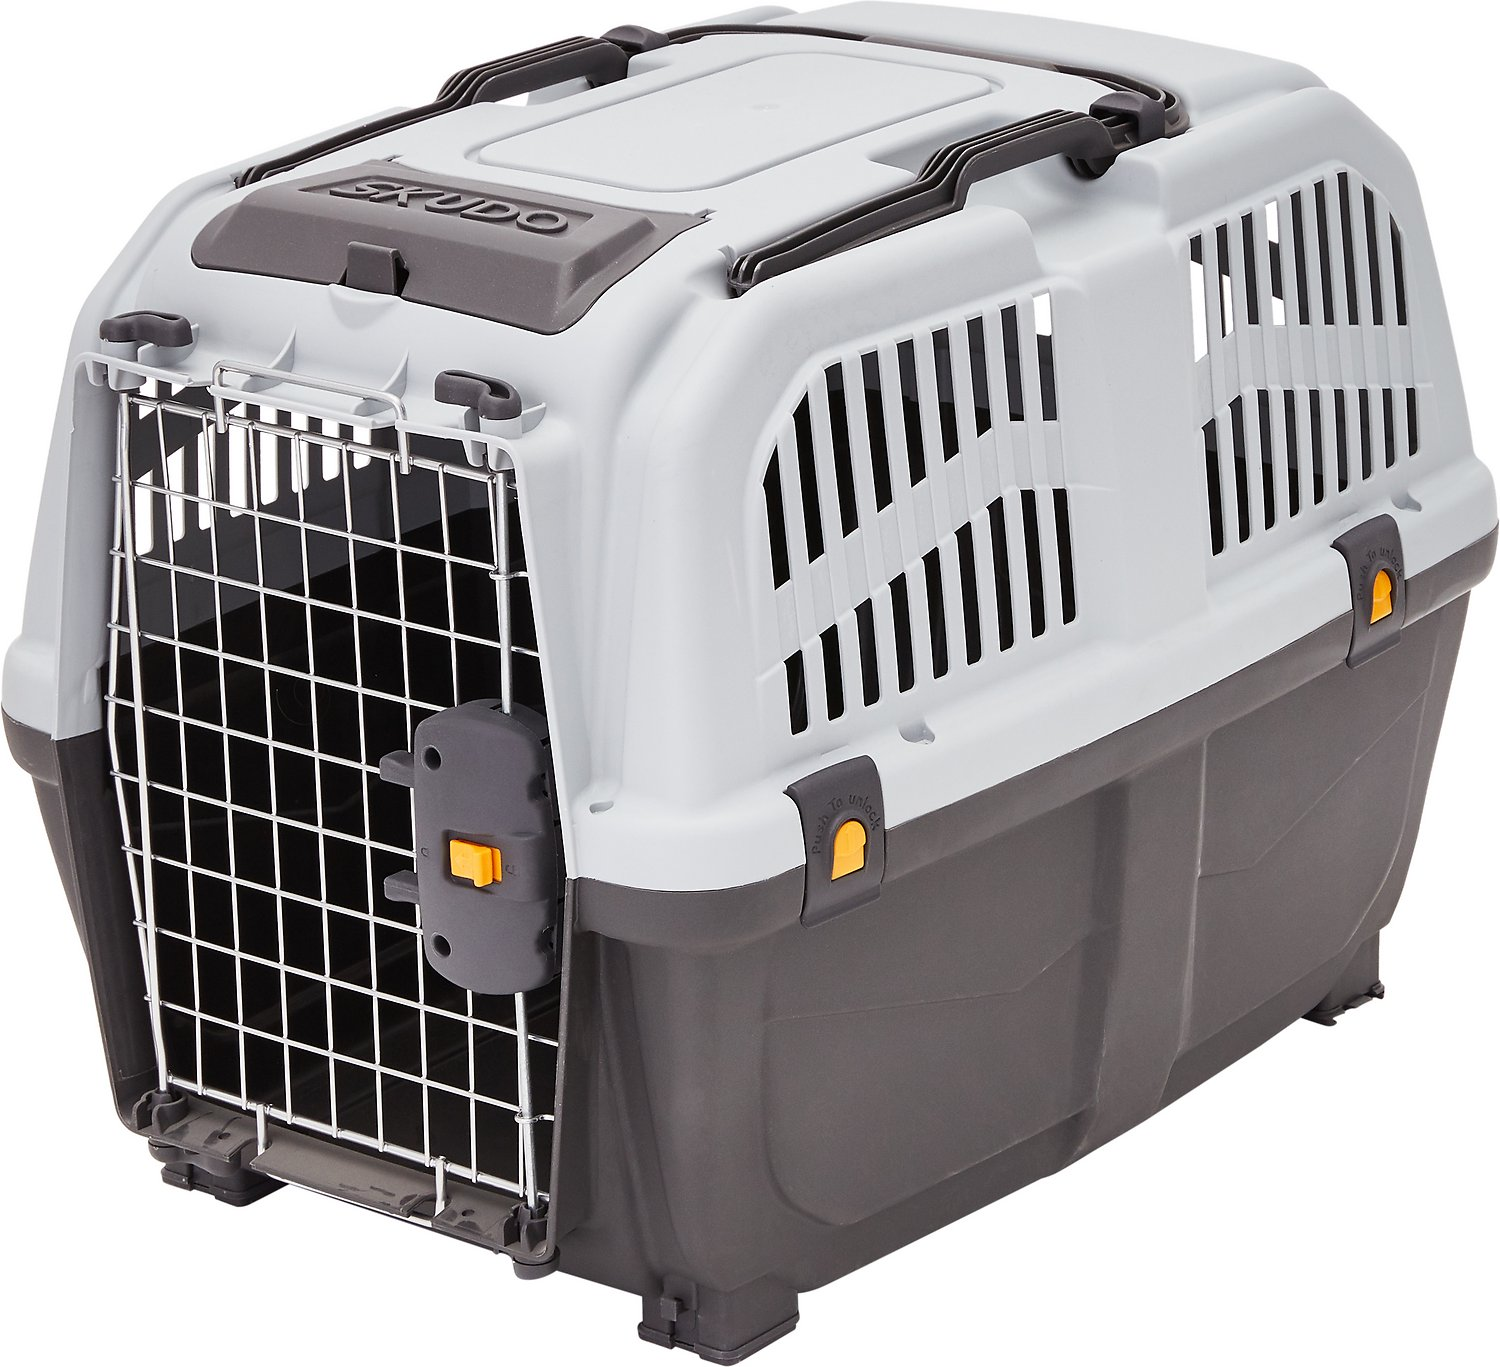 MidWest Skudo Deluxe Plastic Pet Carrier Image